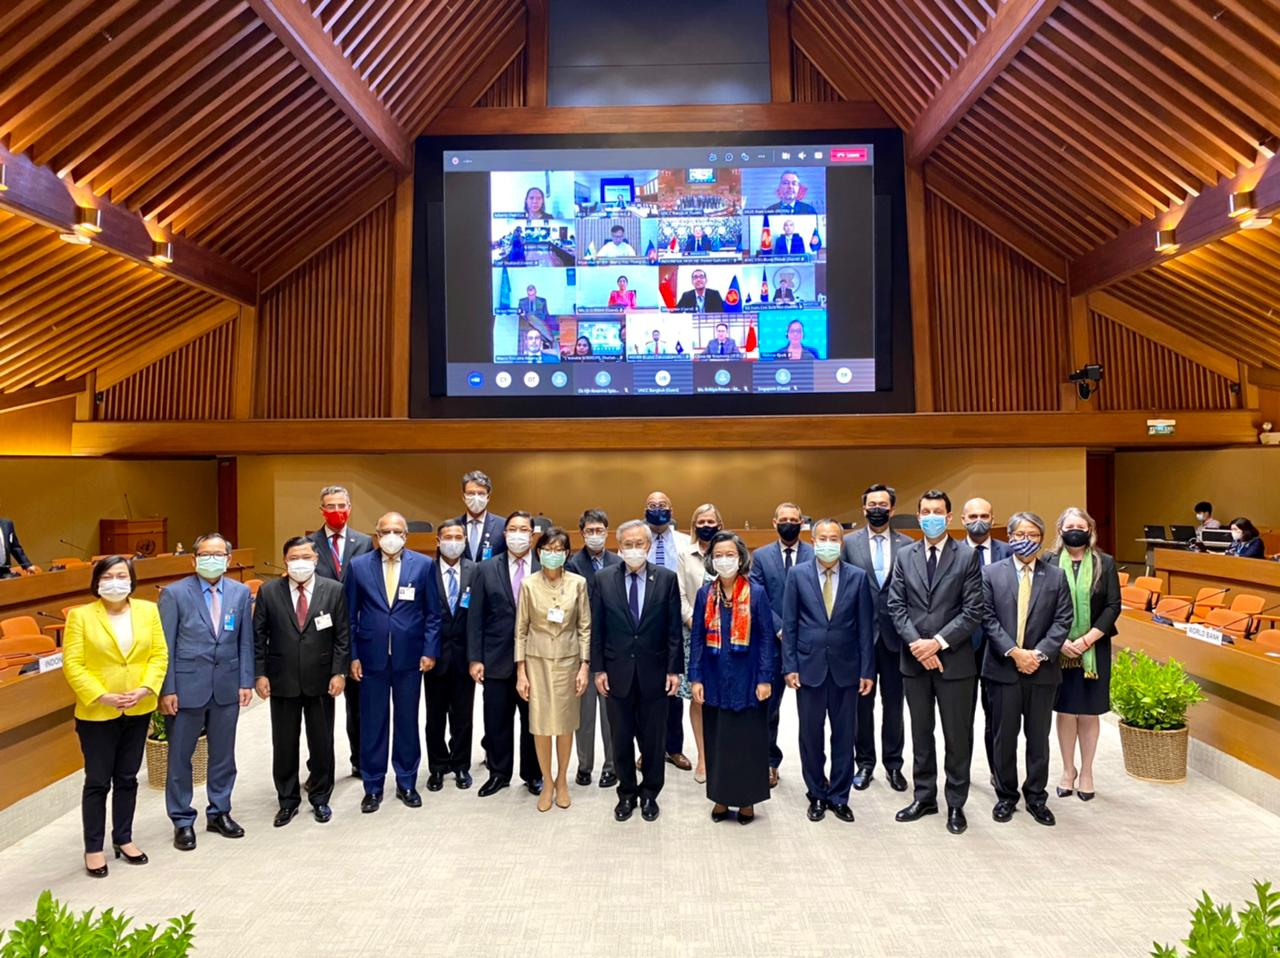 5th High-Level Brainstorming Dialogue on Enhancing Complementarities between the ASEAN Community Vision 2025 and the United Nations 2030 Agenda for Sustainable Development, 31 March 2021